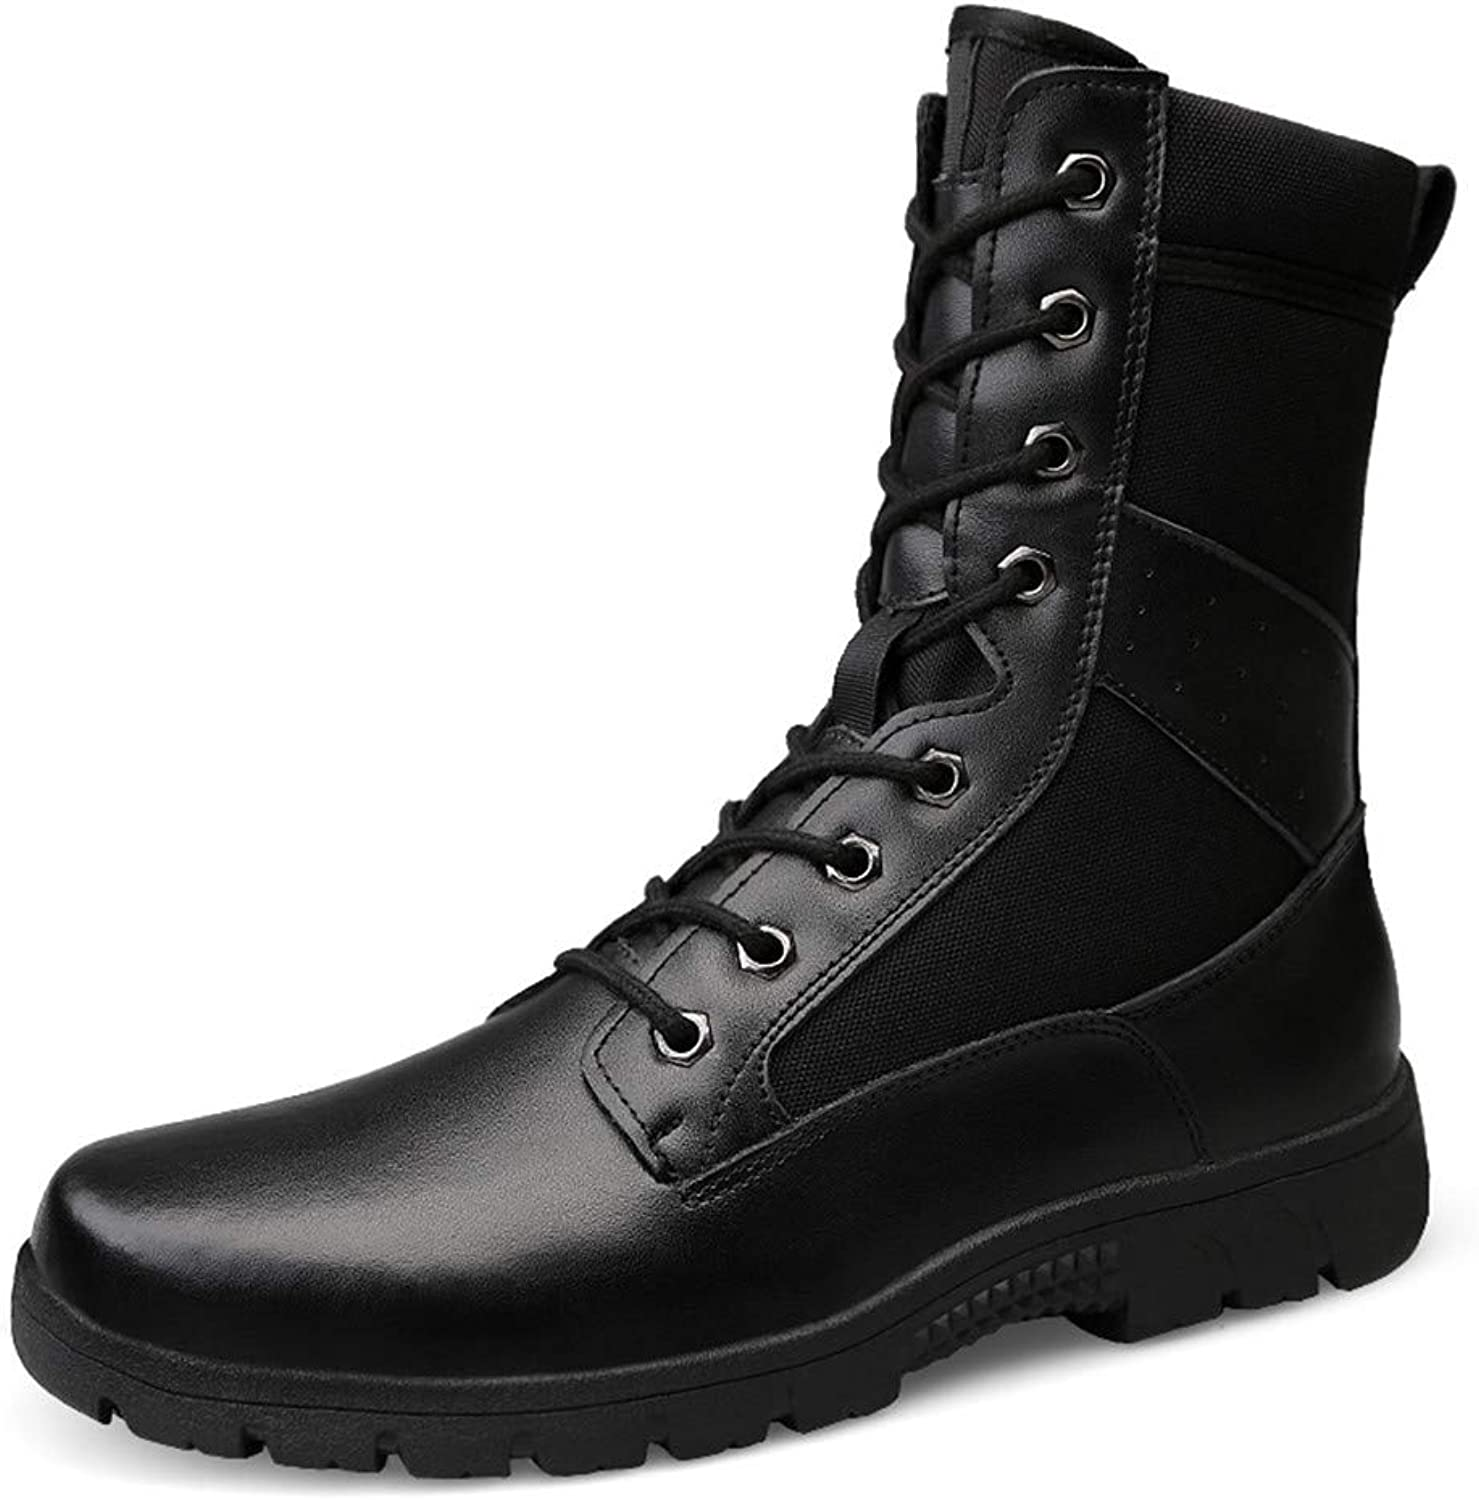 XHD- Classic shoes Men's Personality Mid-Calf Boots Casual Personality Hot Style Genuine Leather Imitation Army Boots(Warm Velvet Optional)